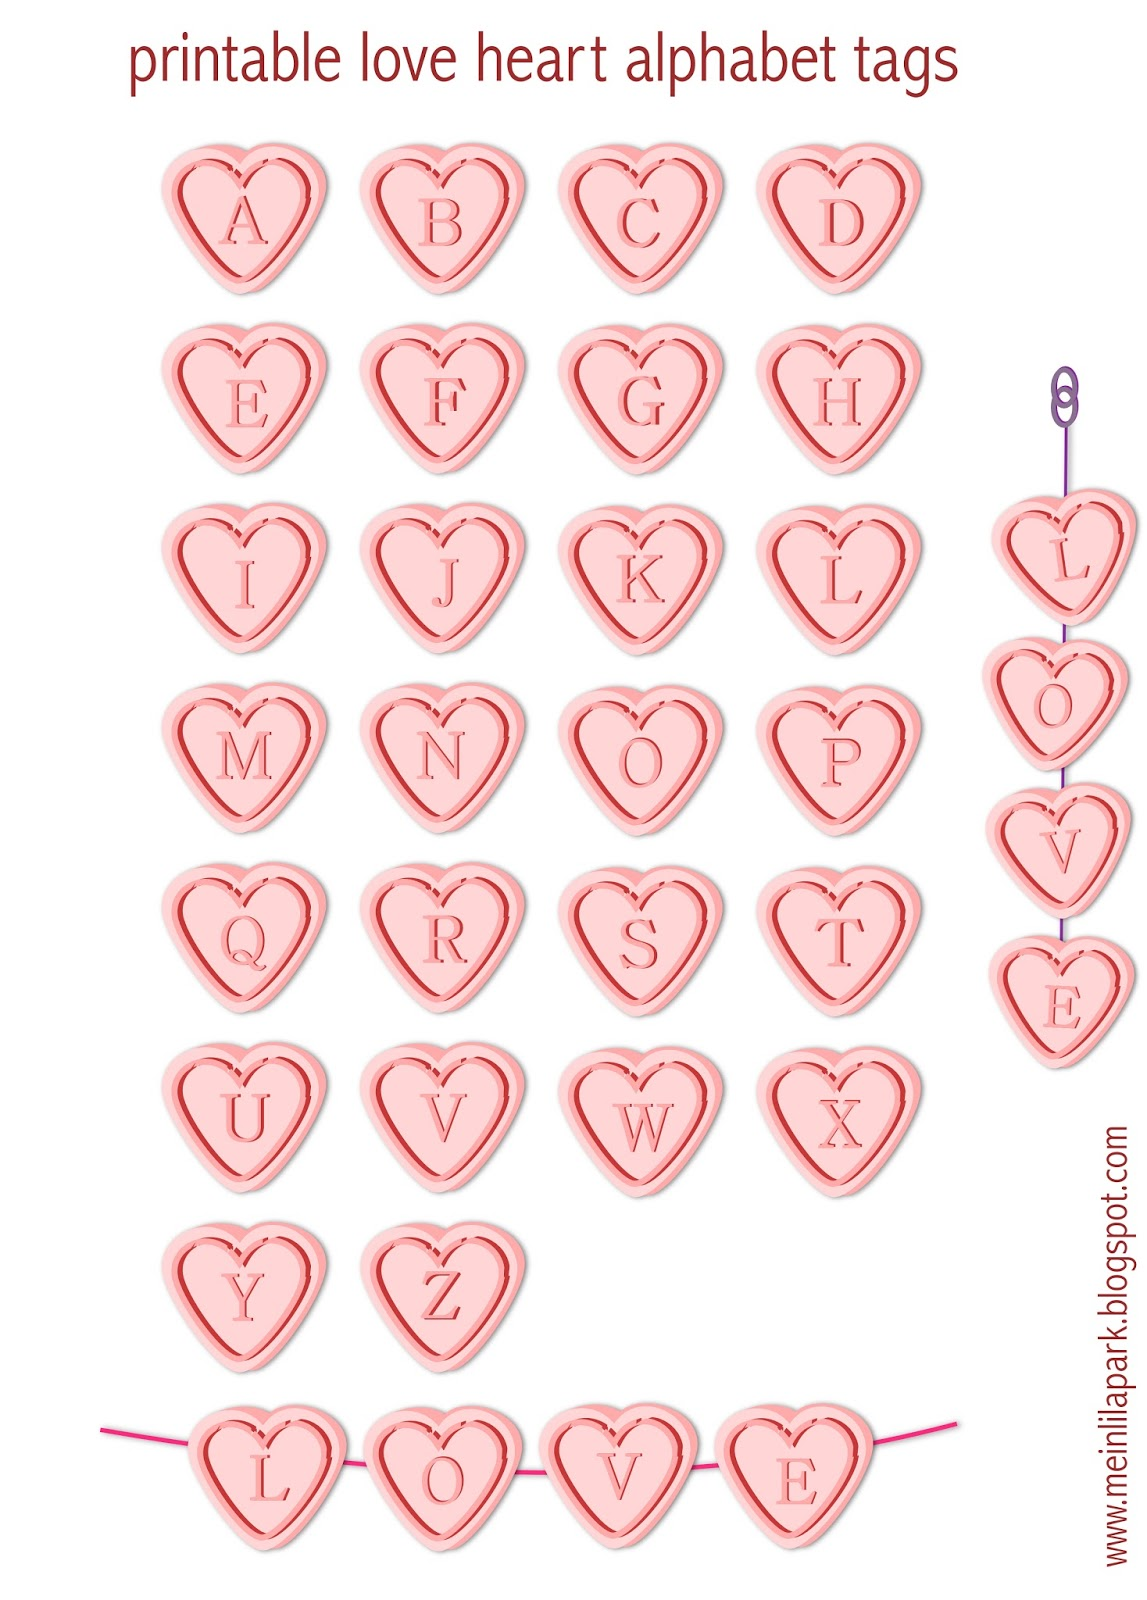 Free Printable Alphabet Letter Tags Love Hearts